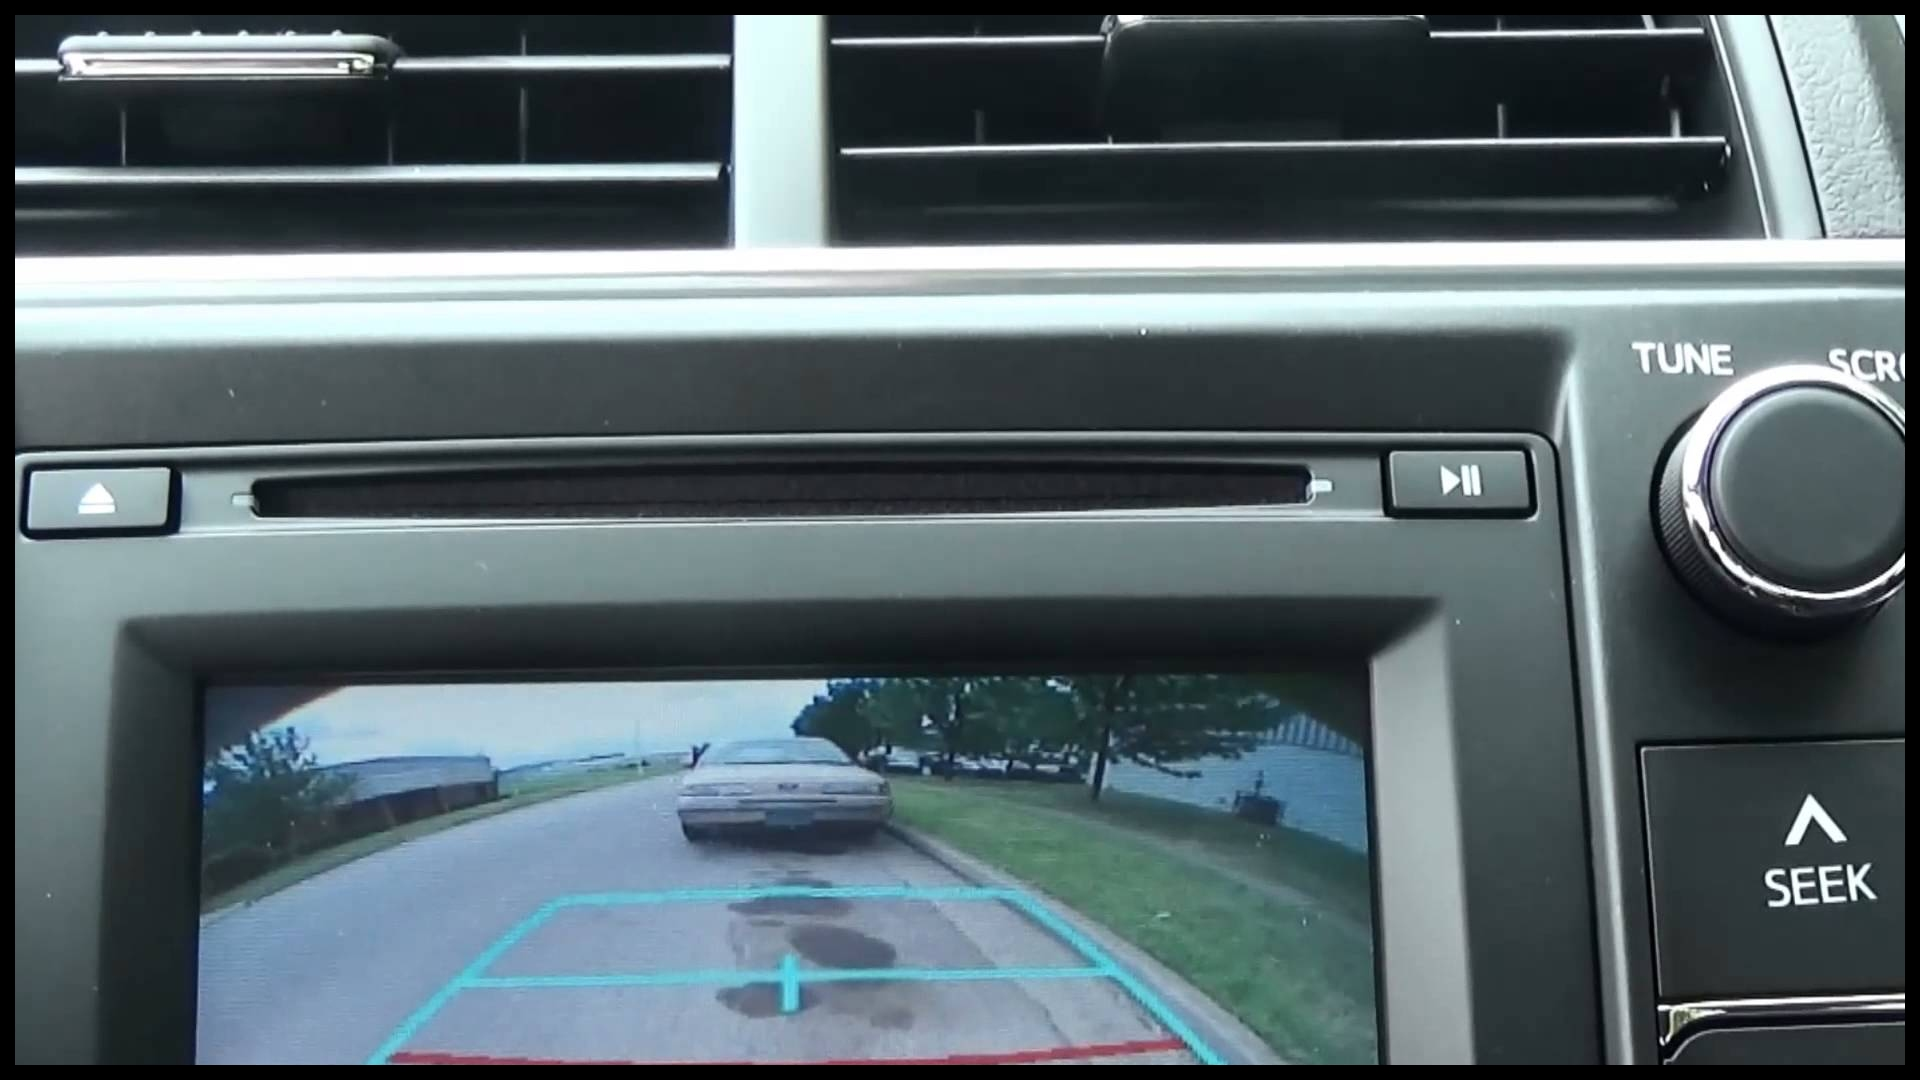 How to use the Back Up Camera on a new 2015 Toyota Camry